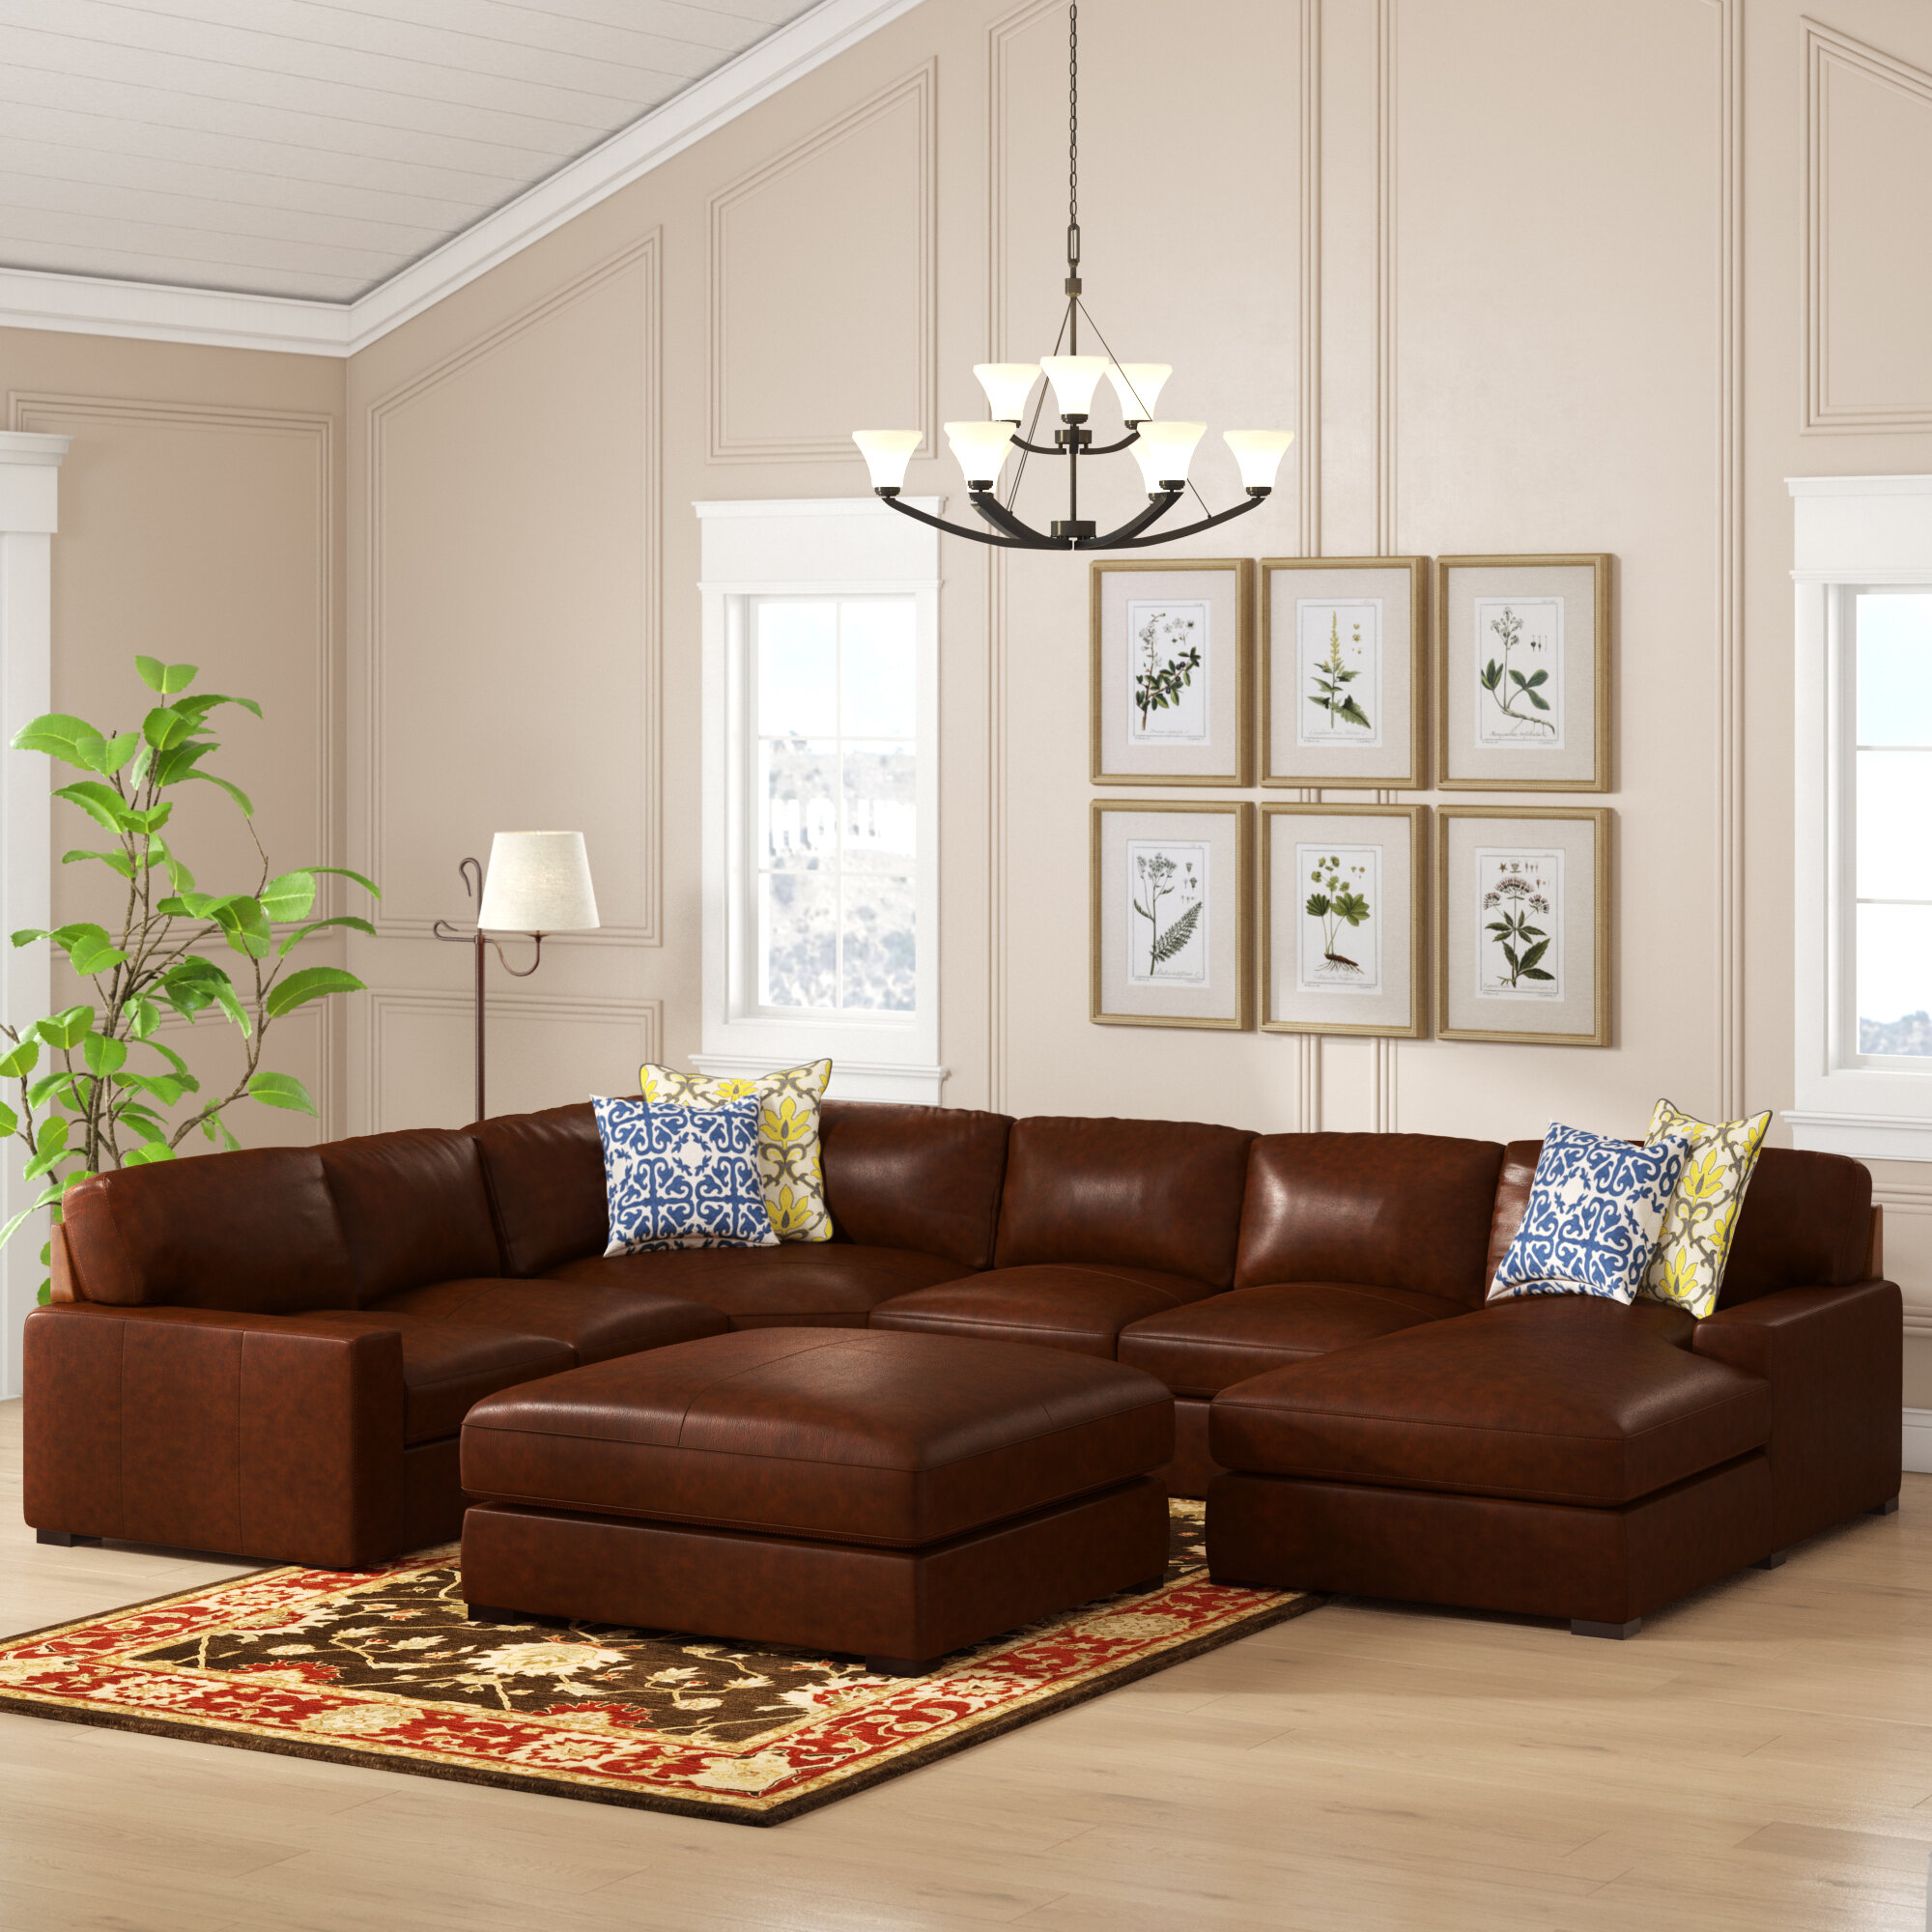 Darby Home Co Gartner 139 5 Genuine Leather Right Hand Facing Modular Large Sectional With Ottoman Reviews Wayfair